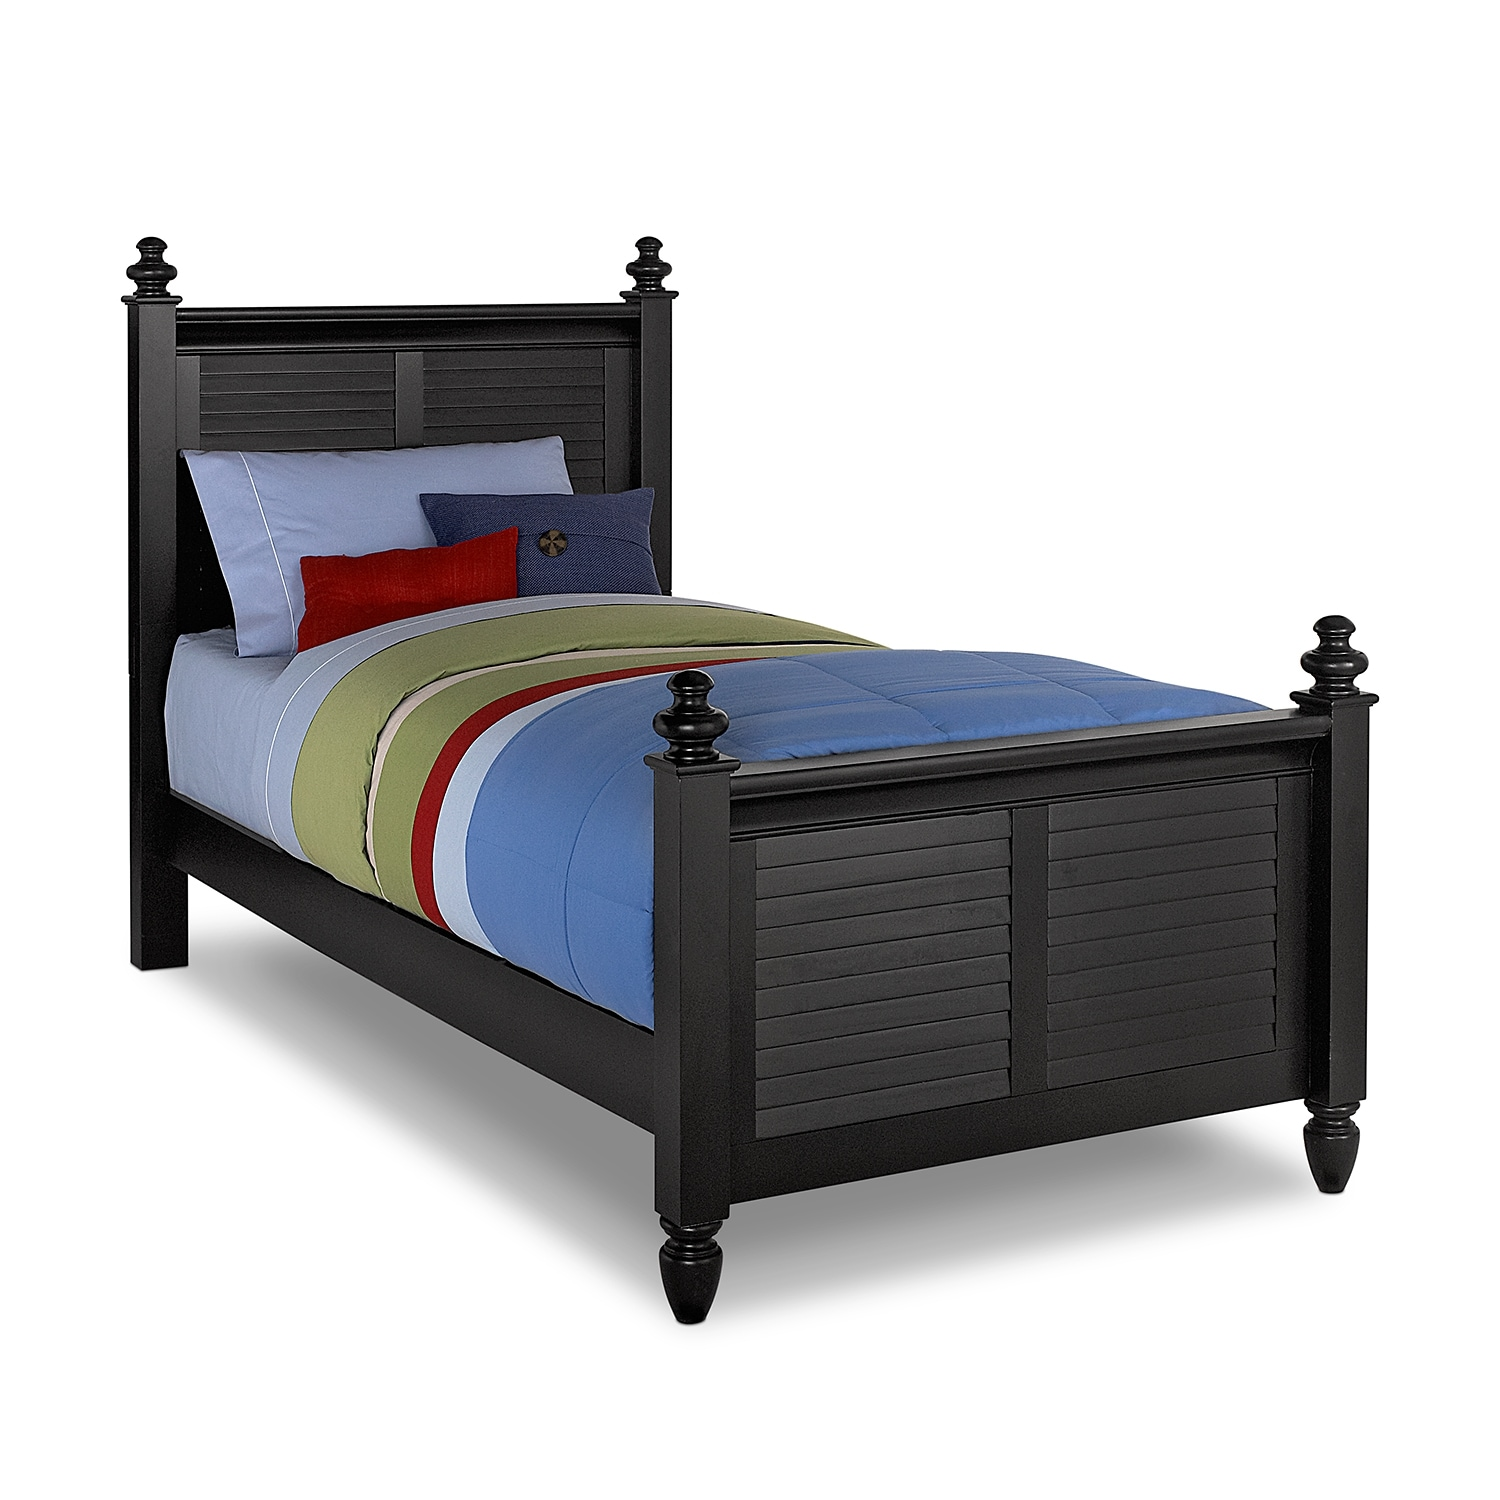 Shop Twin Beds | Value City Furniture and Mattresses